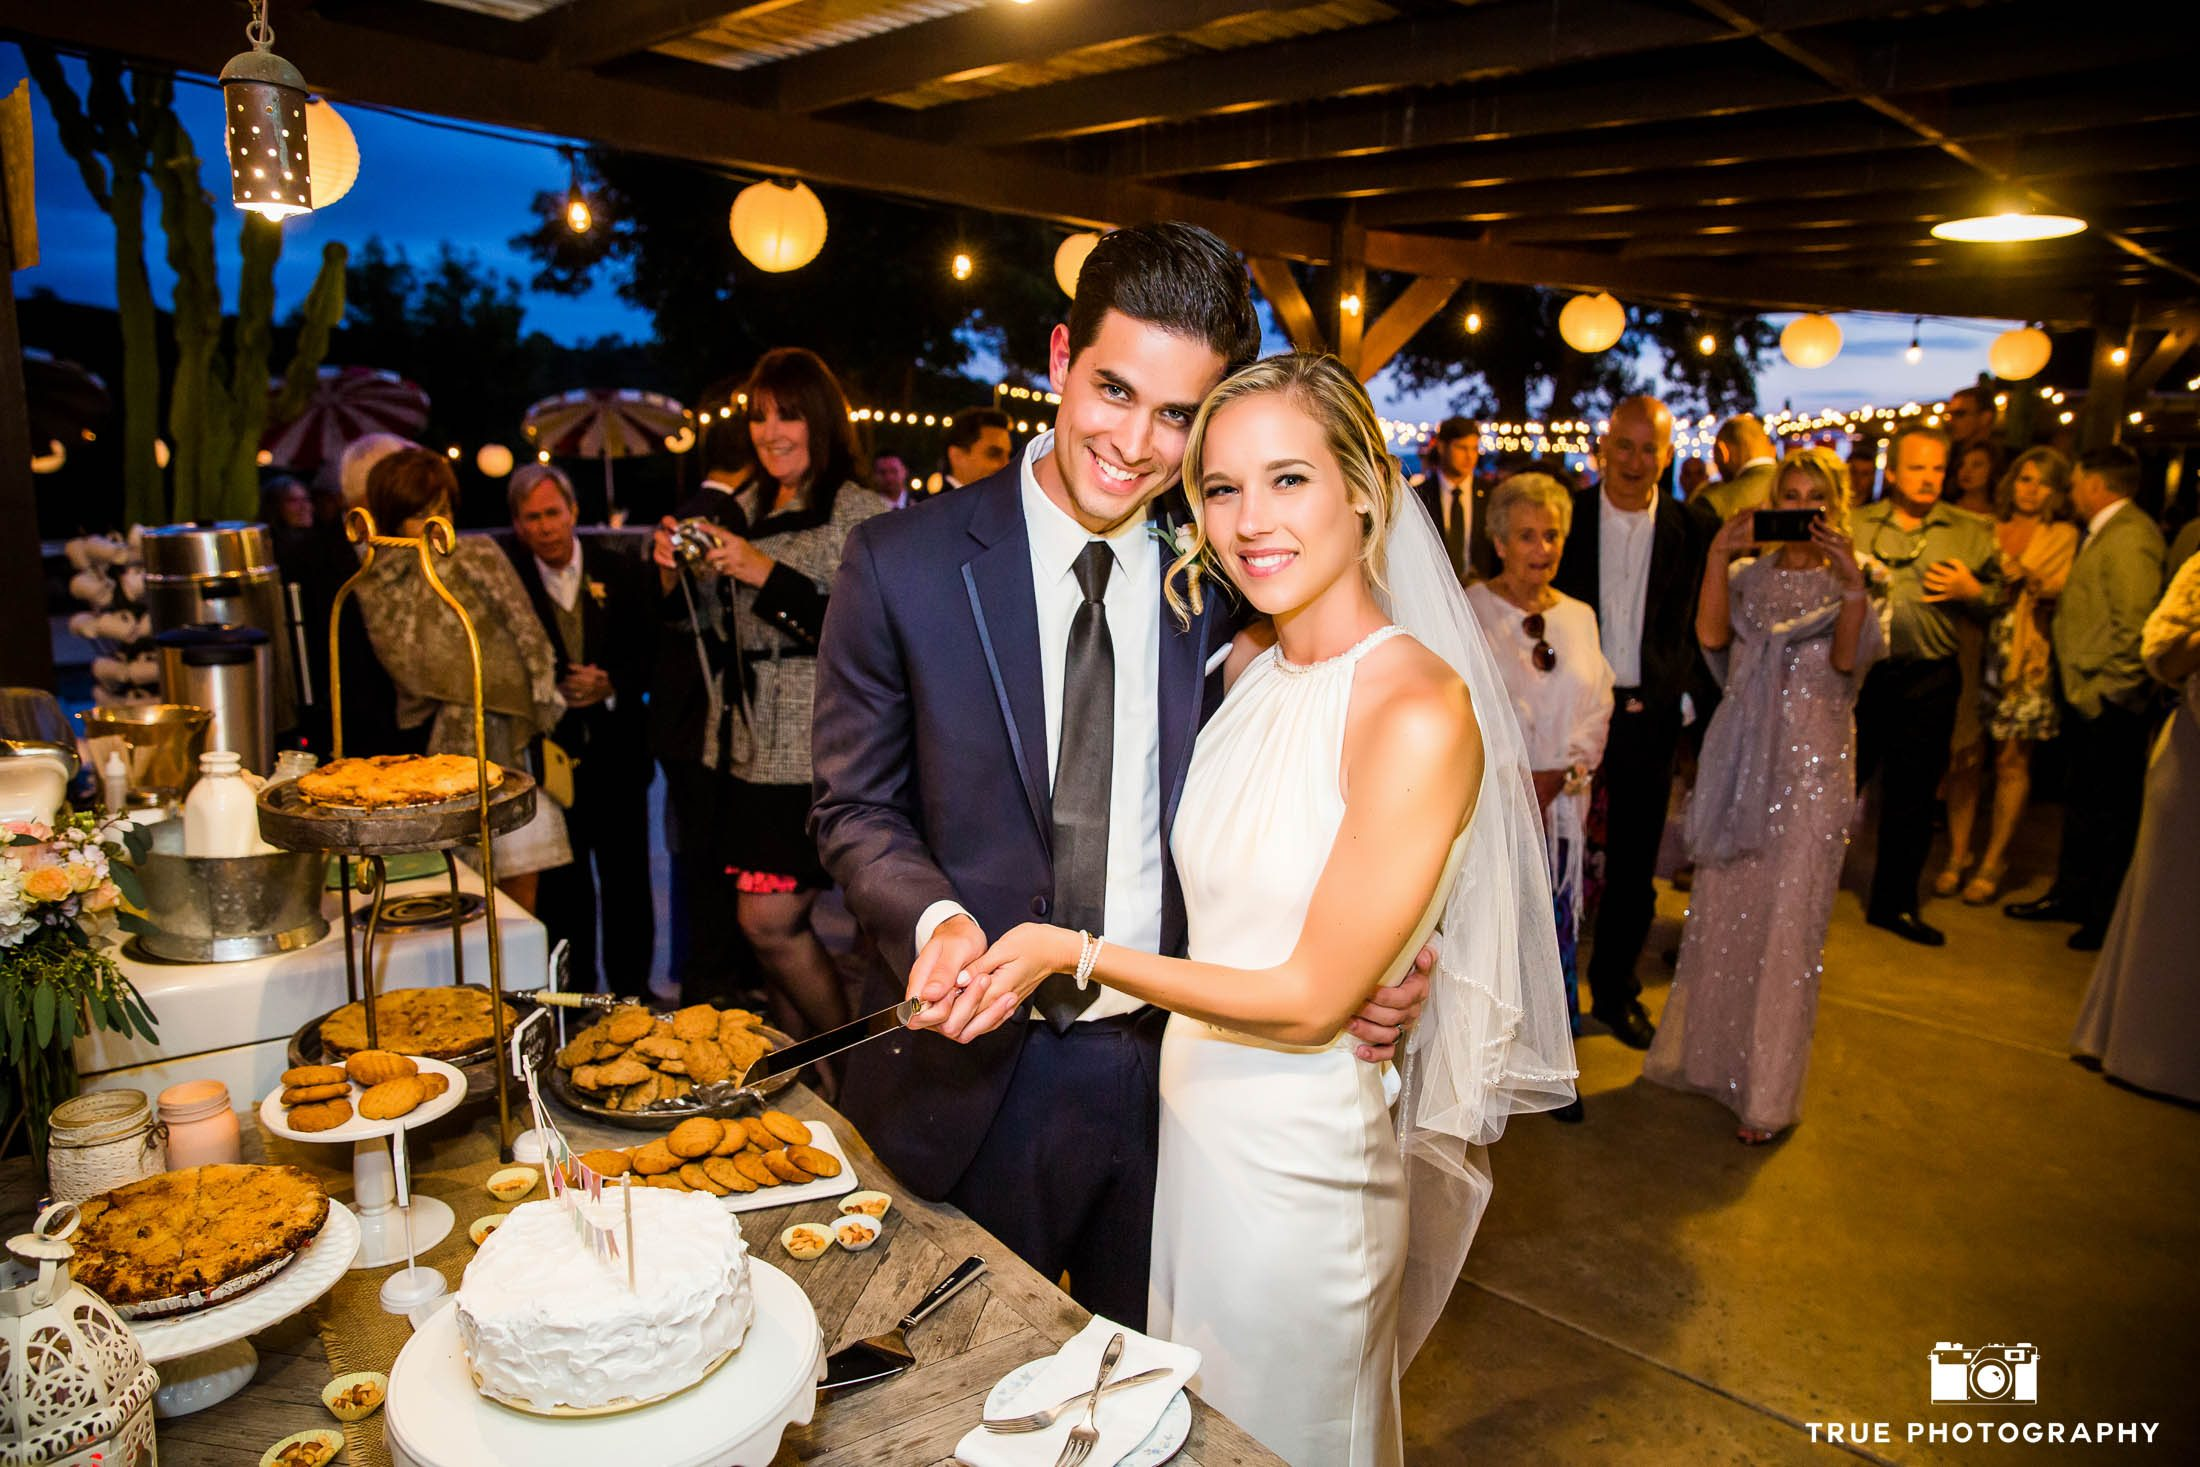 Bride and Groom hold knife and begin to cut cake as guests watch during outdoor wedding reception